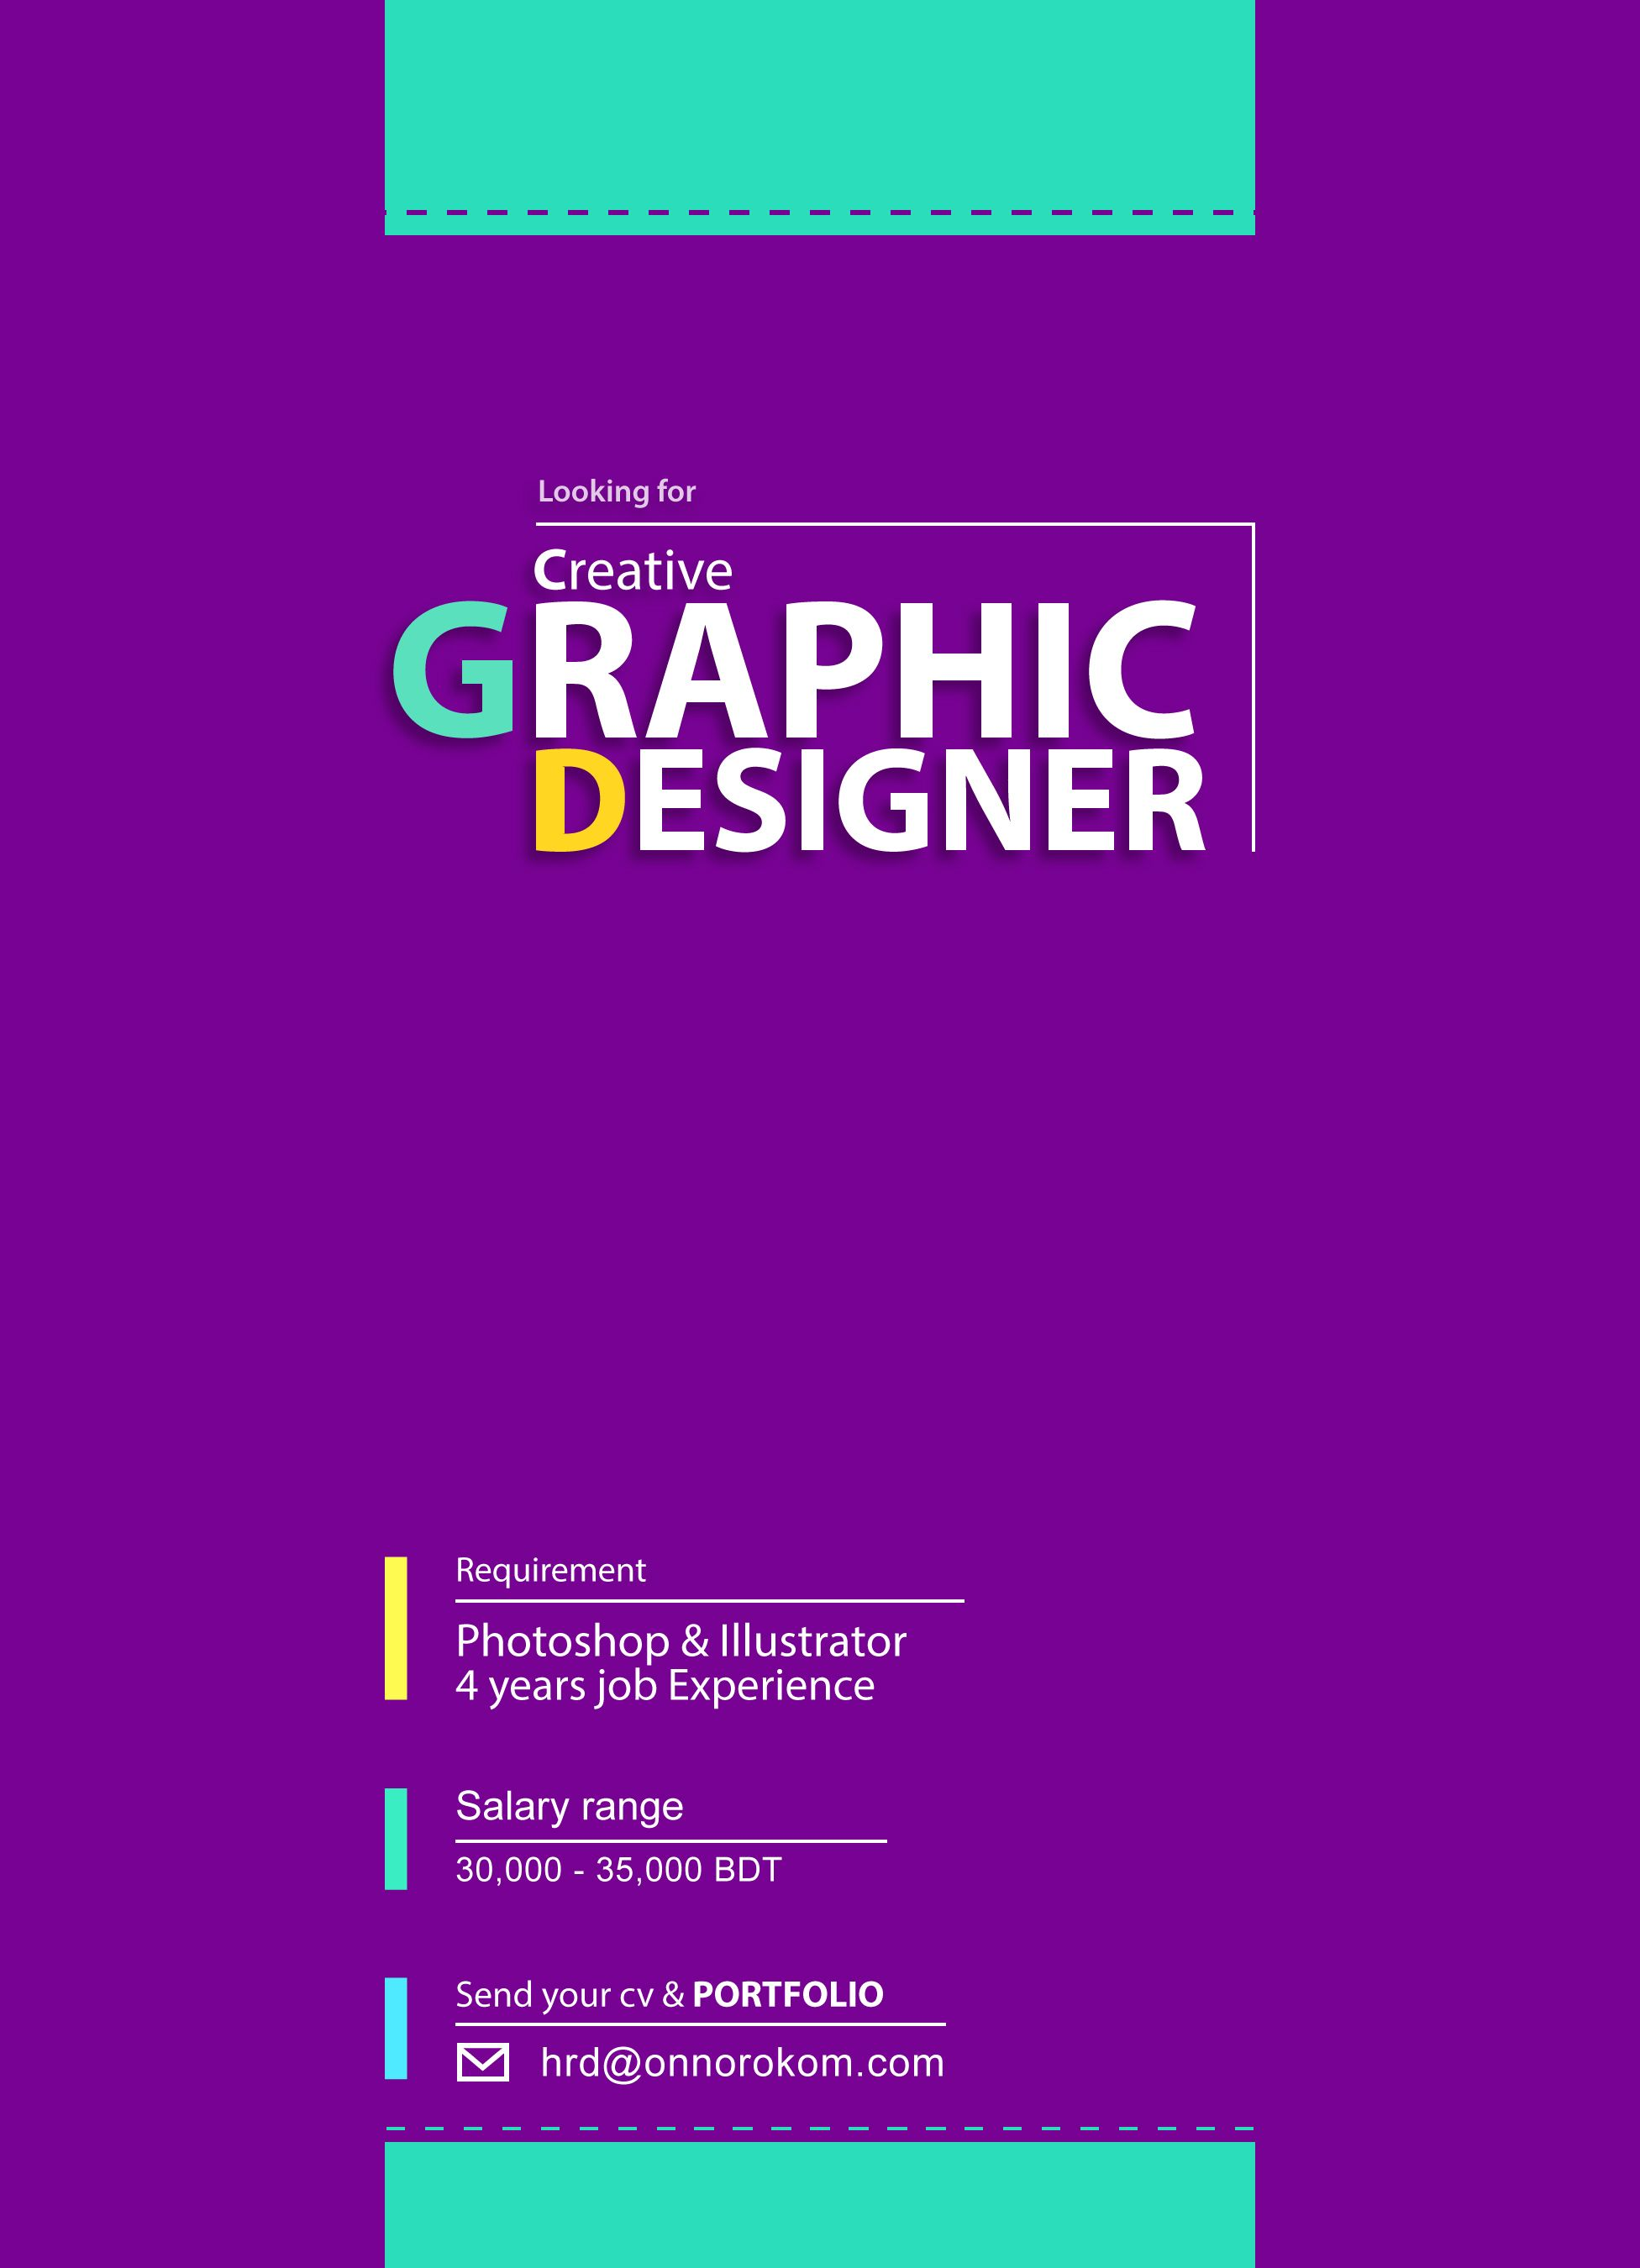 Graphic Designer Wanted  Real Design    Graphic Designers